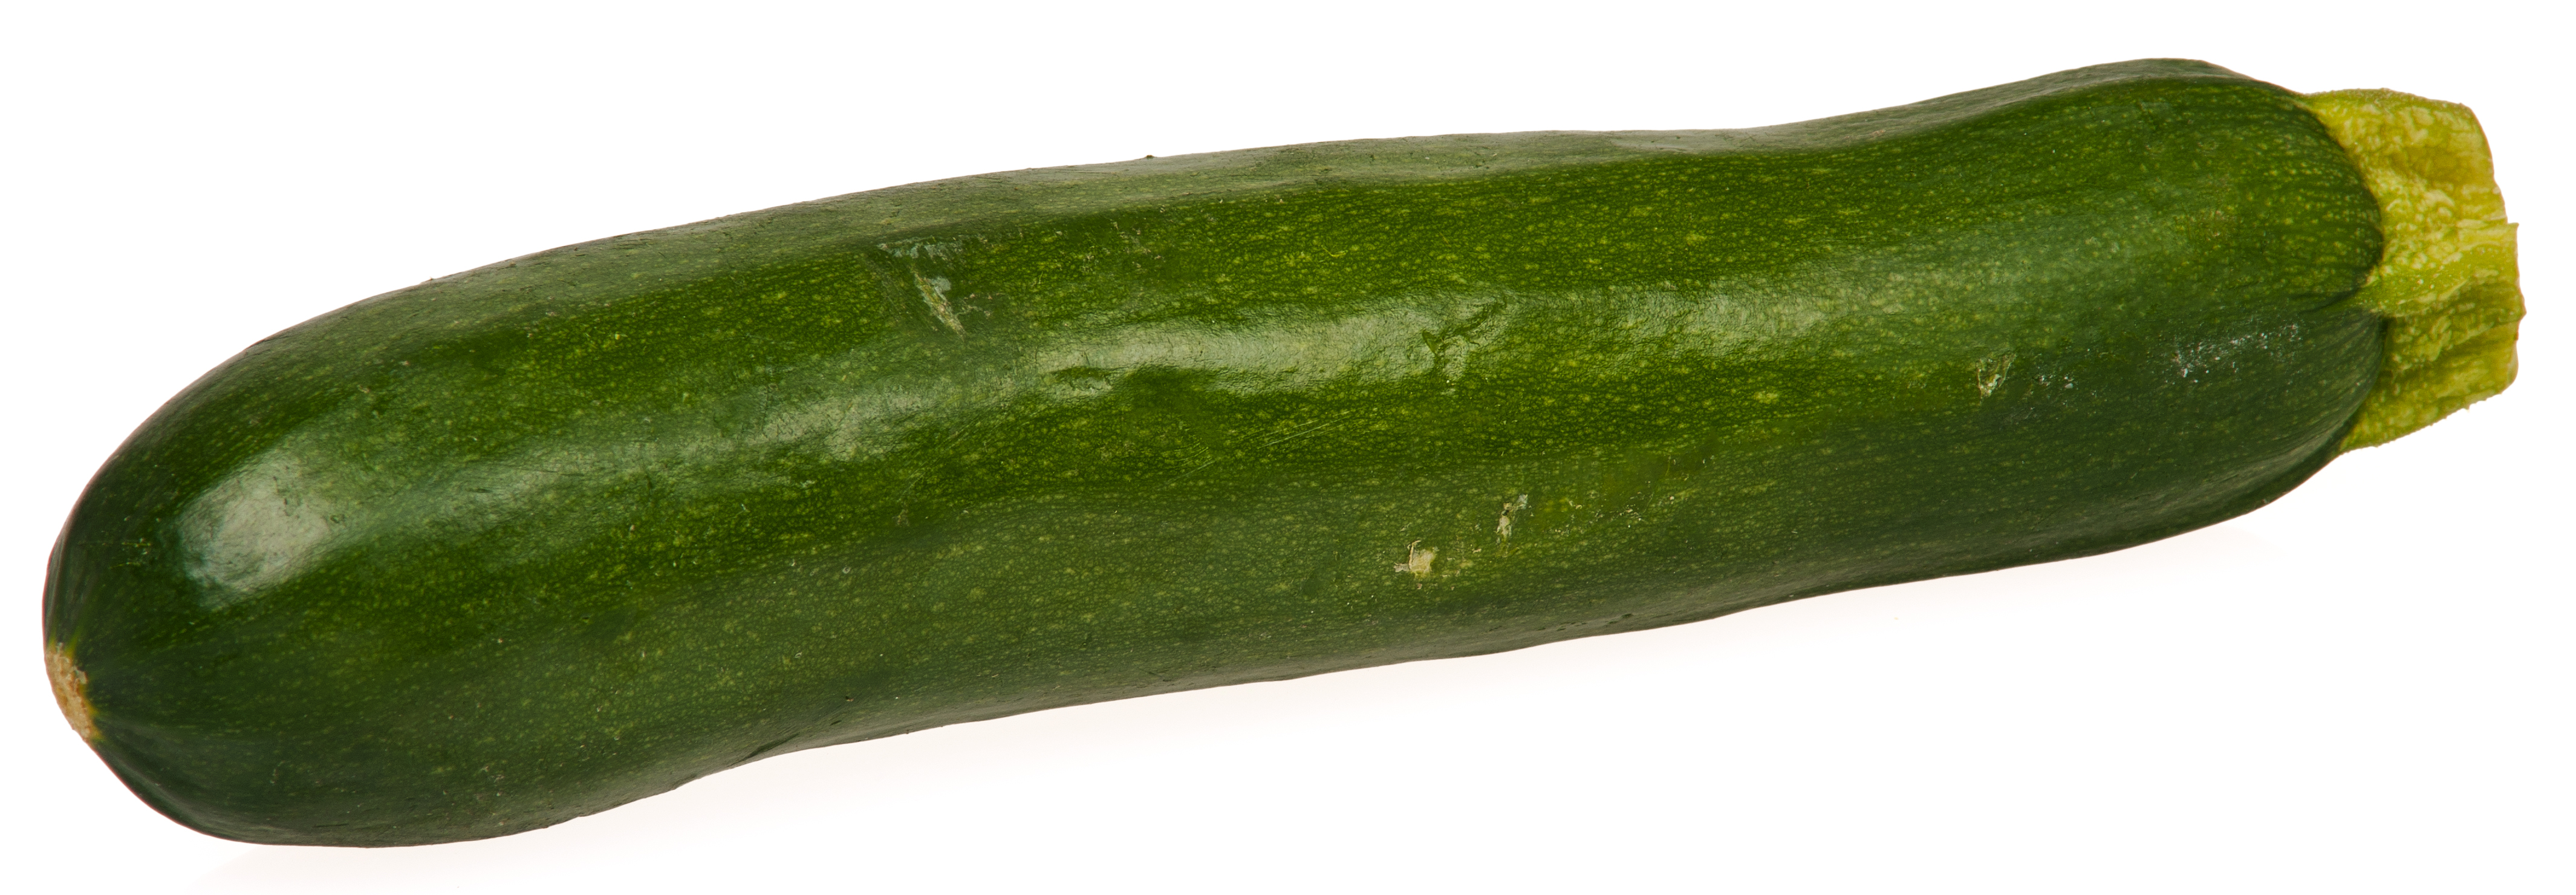 Zucchini-Whole.jpg